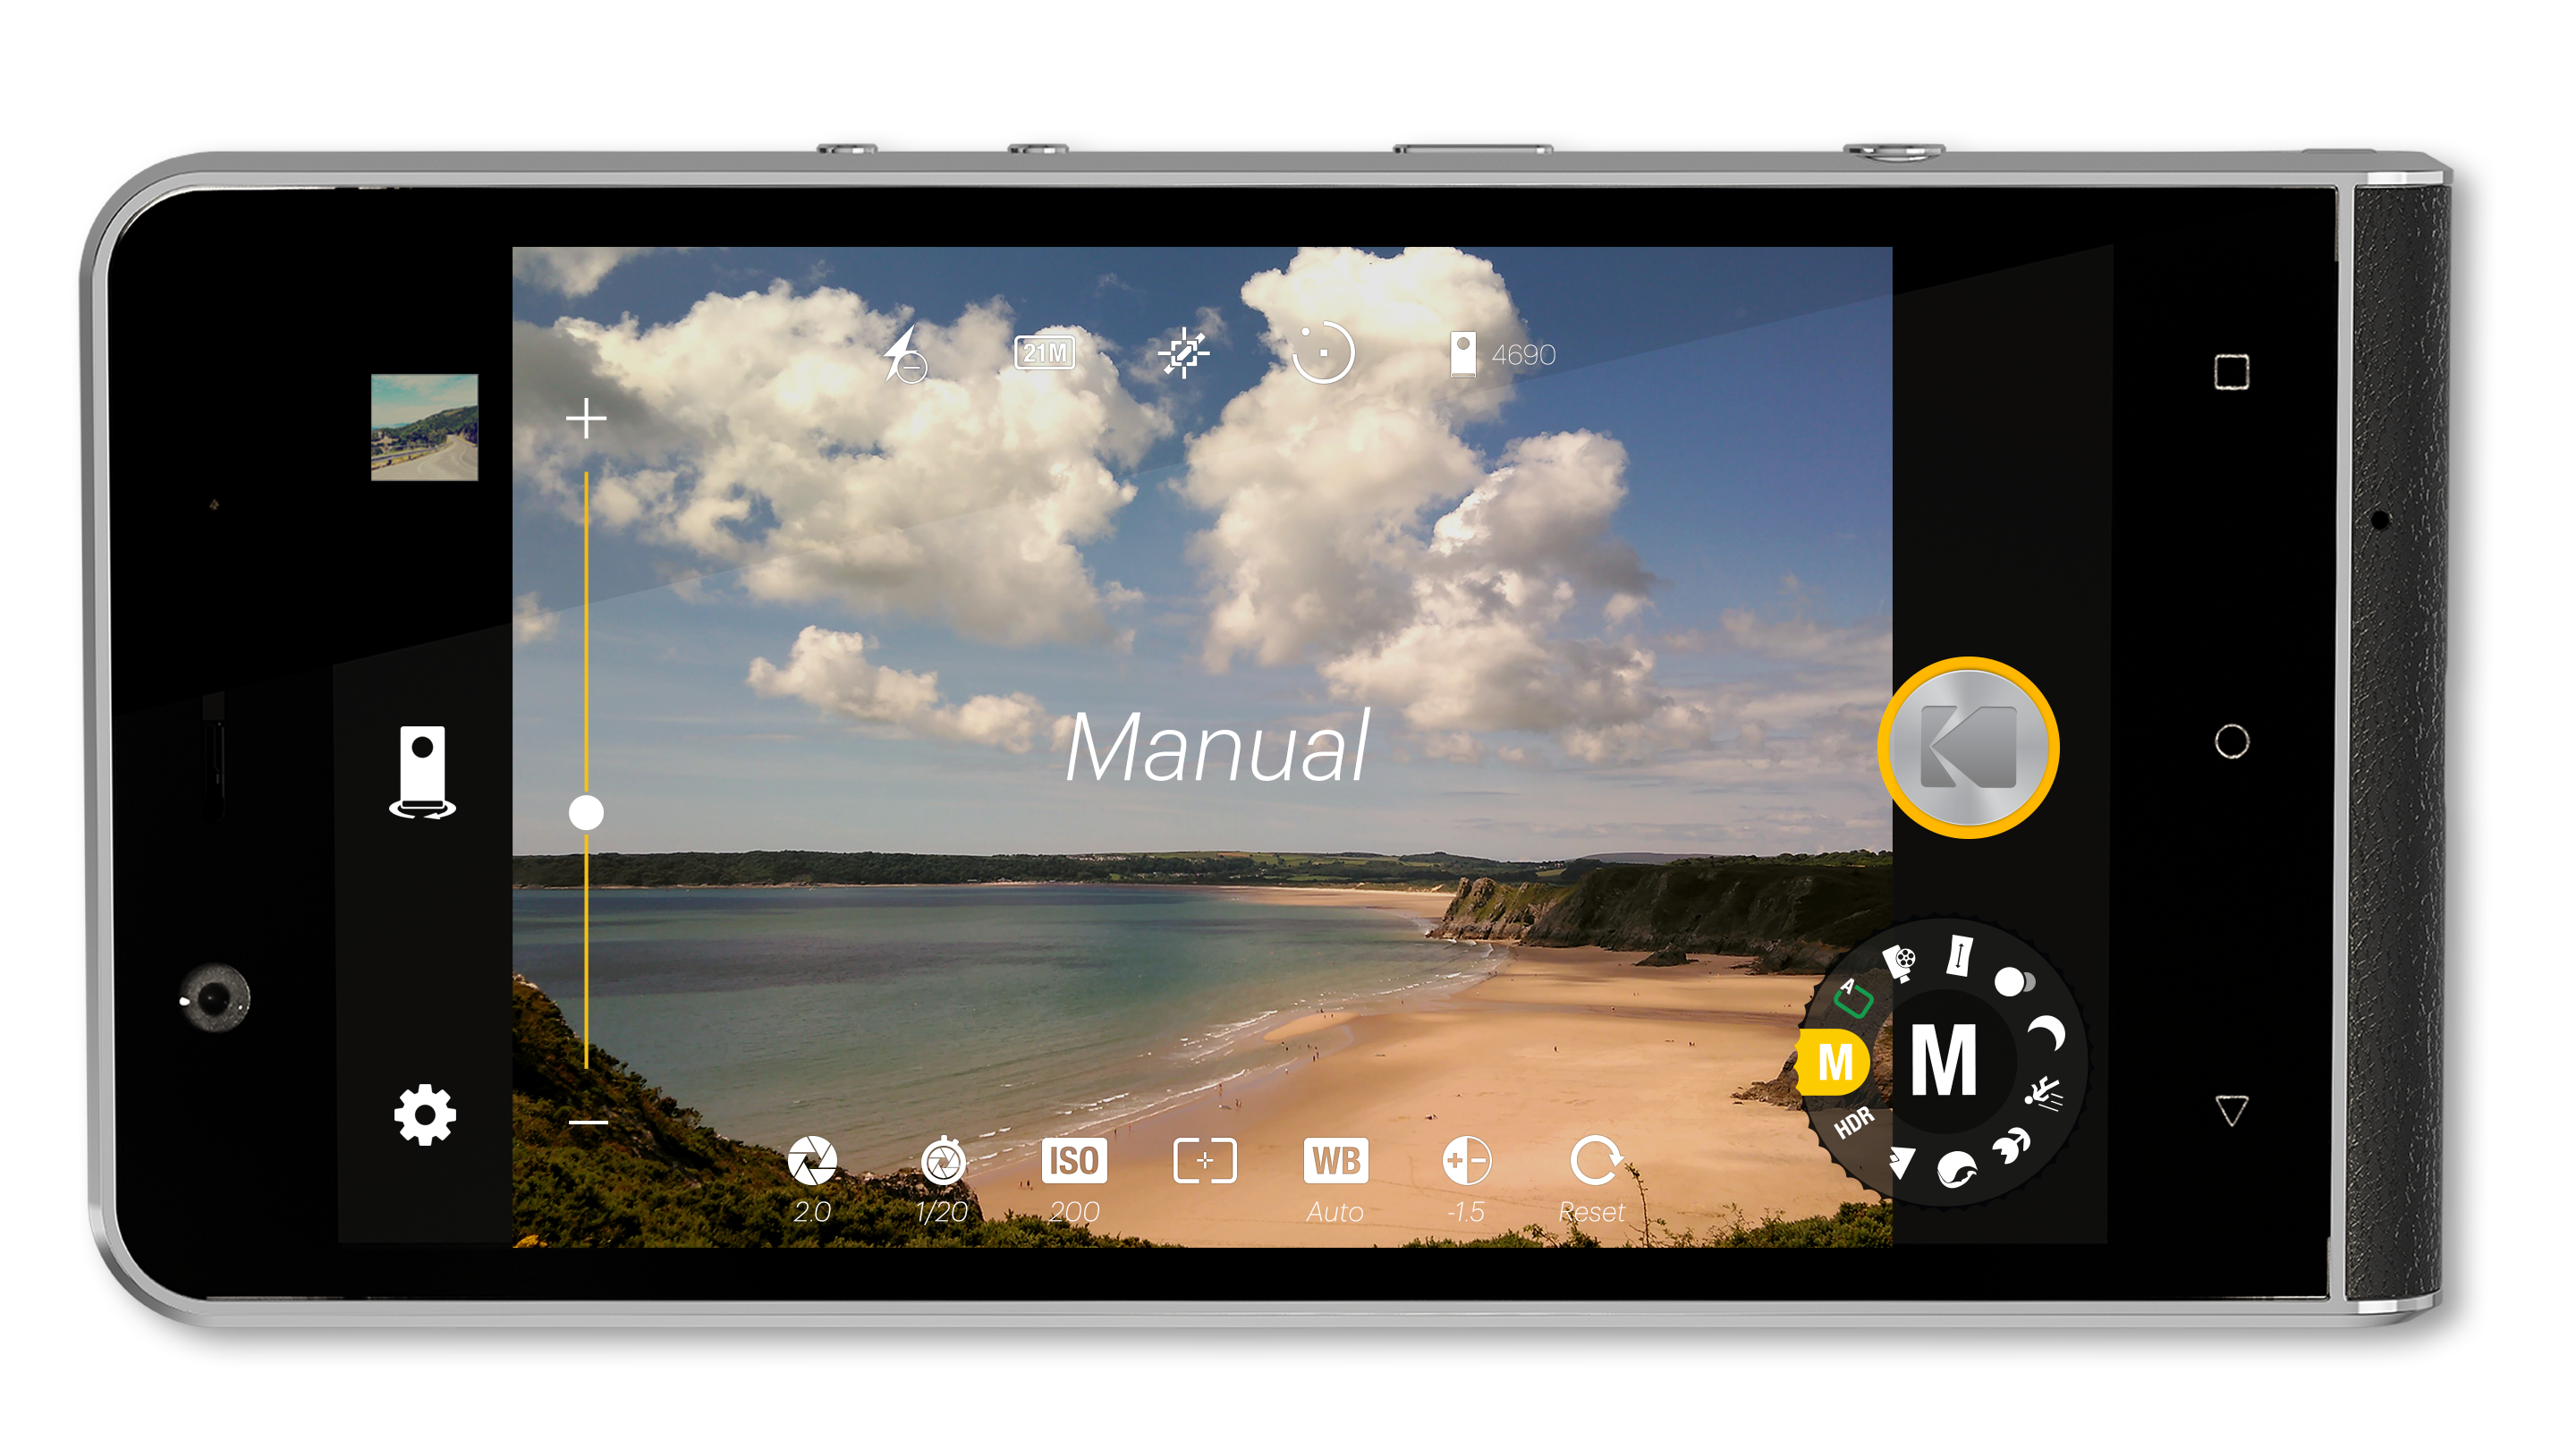 ektra-camera-ui-mockup_manual